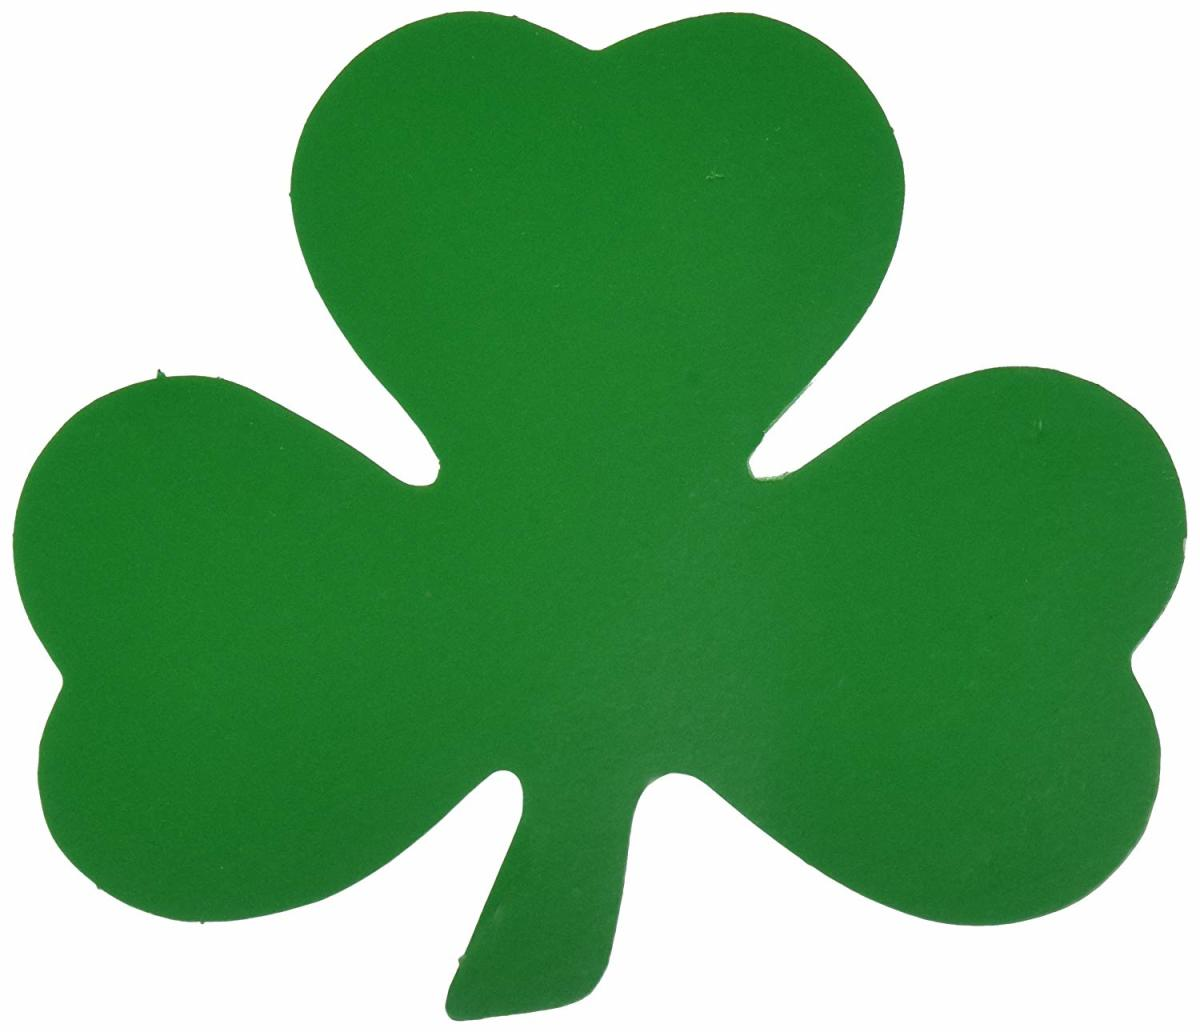 What does the clover represent?